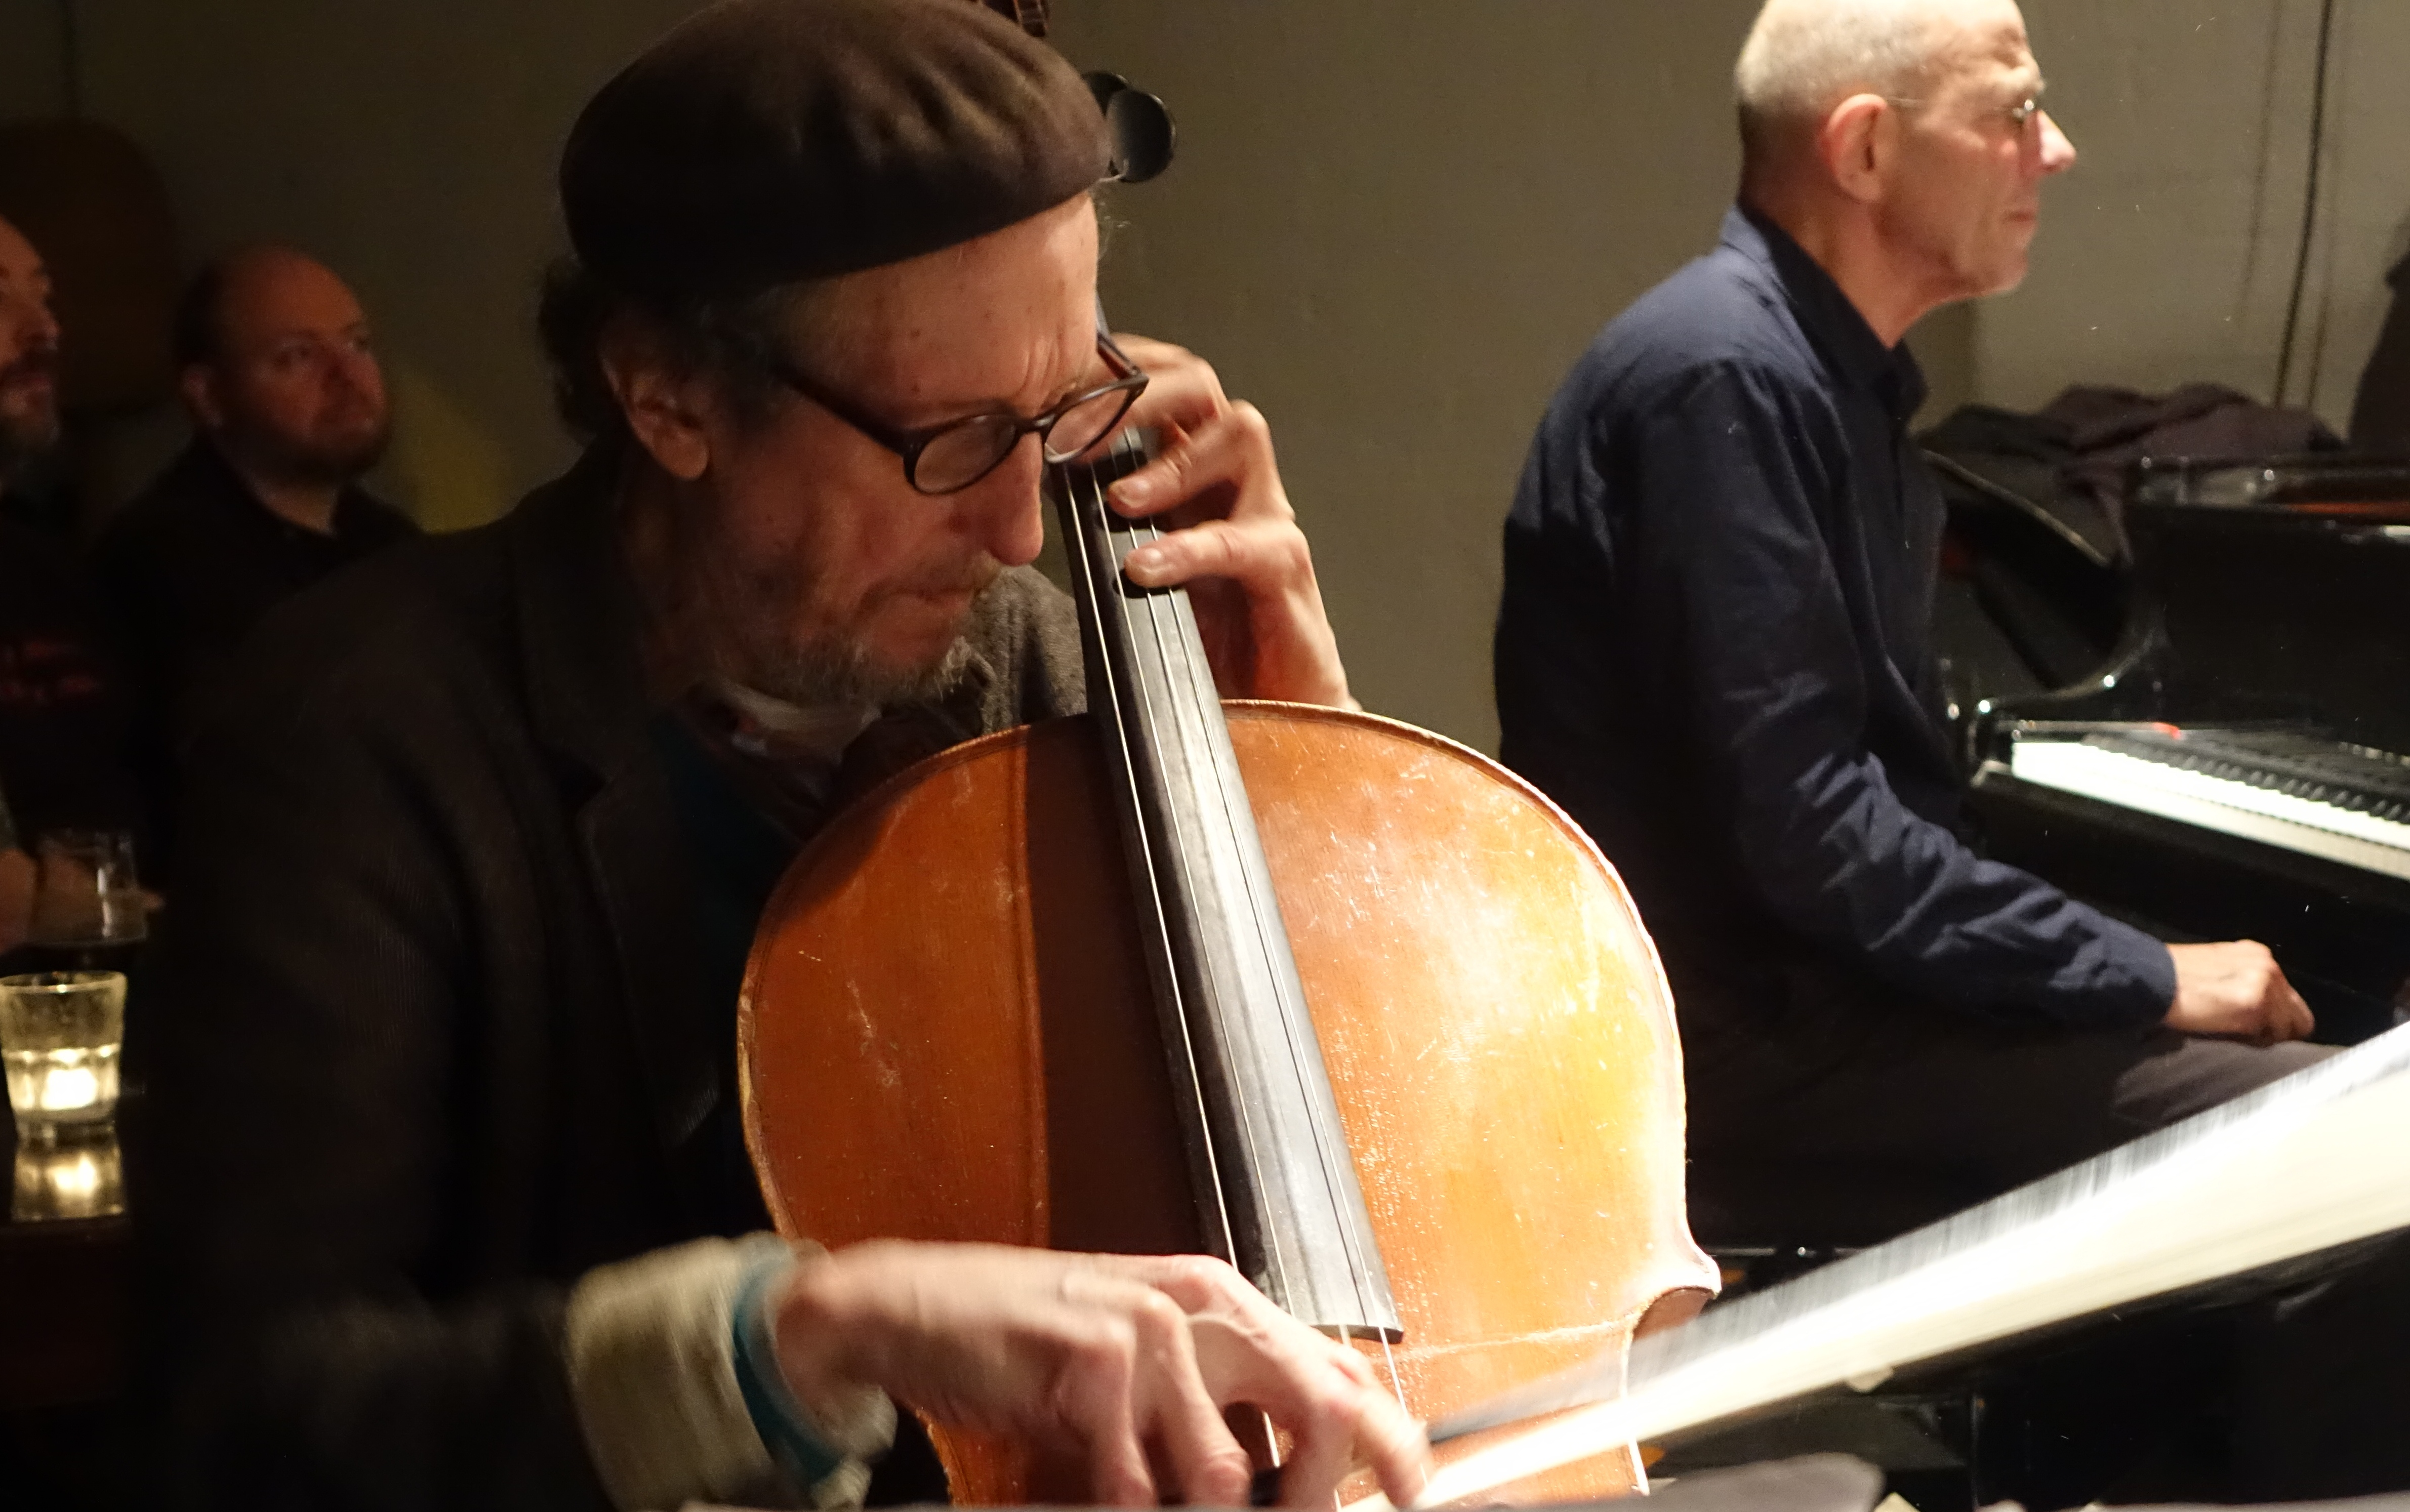 Tristan Honsinger and Guus Janssen at Cafe Oto, London in December 2018